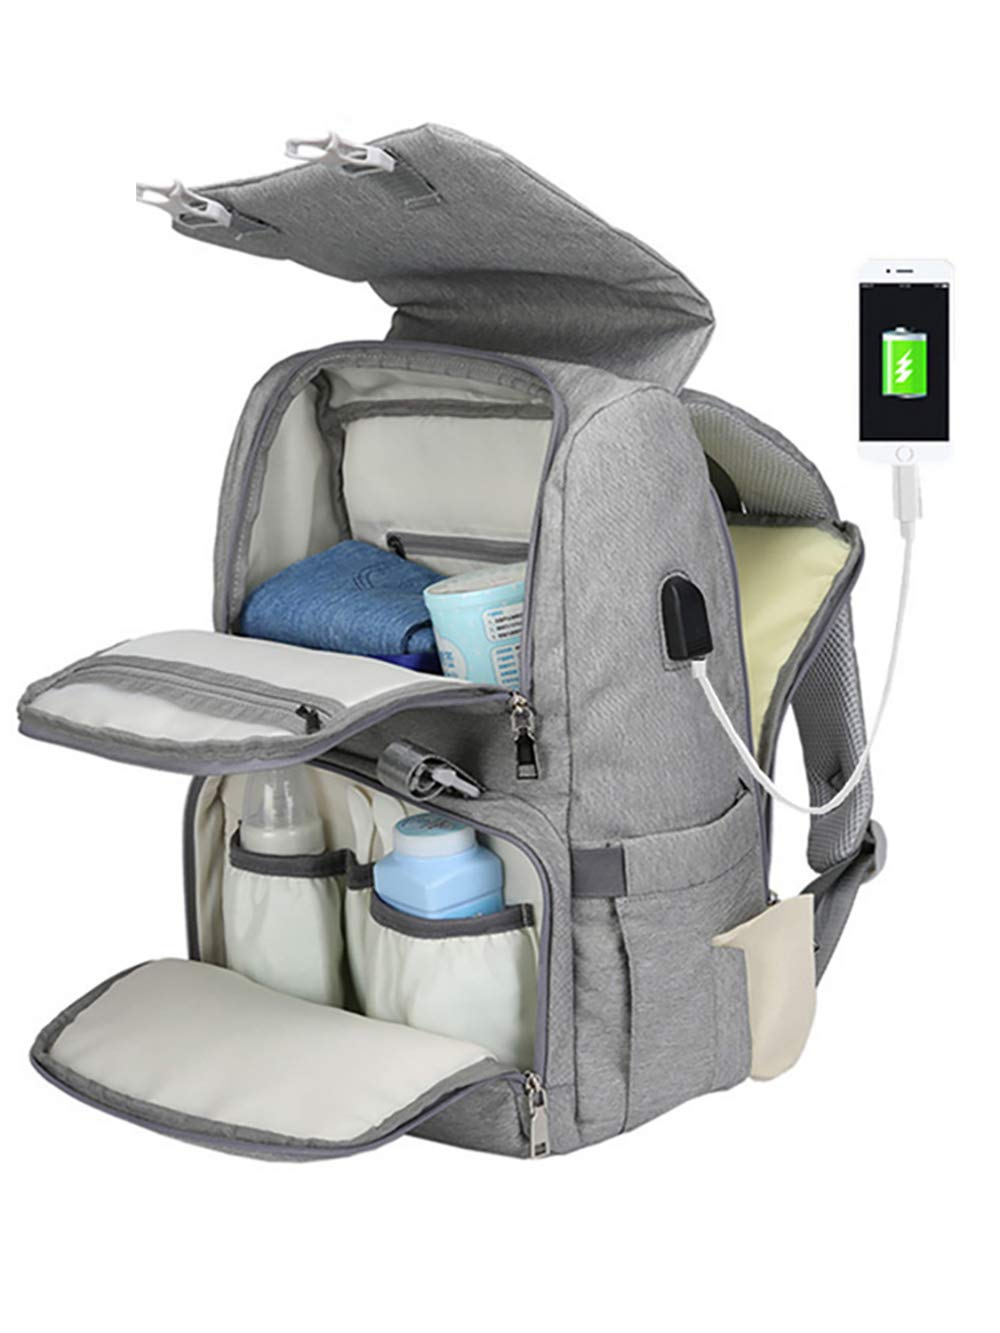 COCOCKA Diaper Bag Backpack with Changing Pad,USB Charging Port &Stoller Straps by COCOCKA